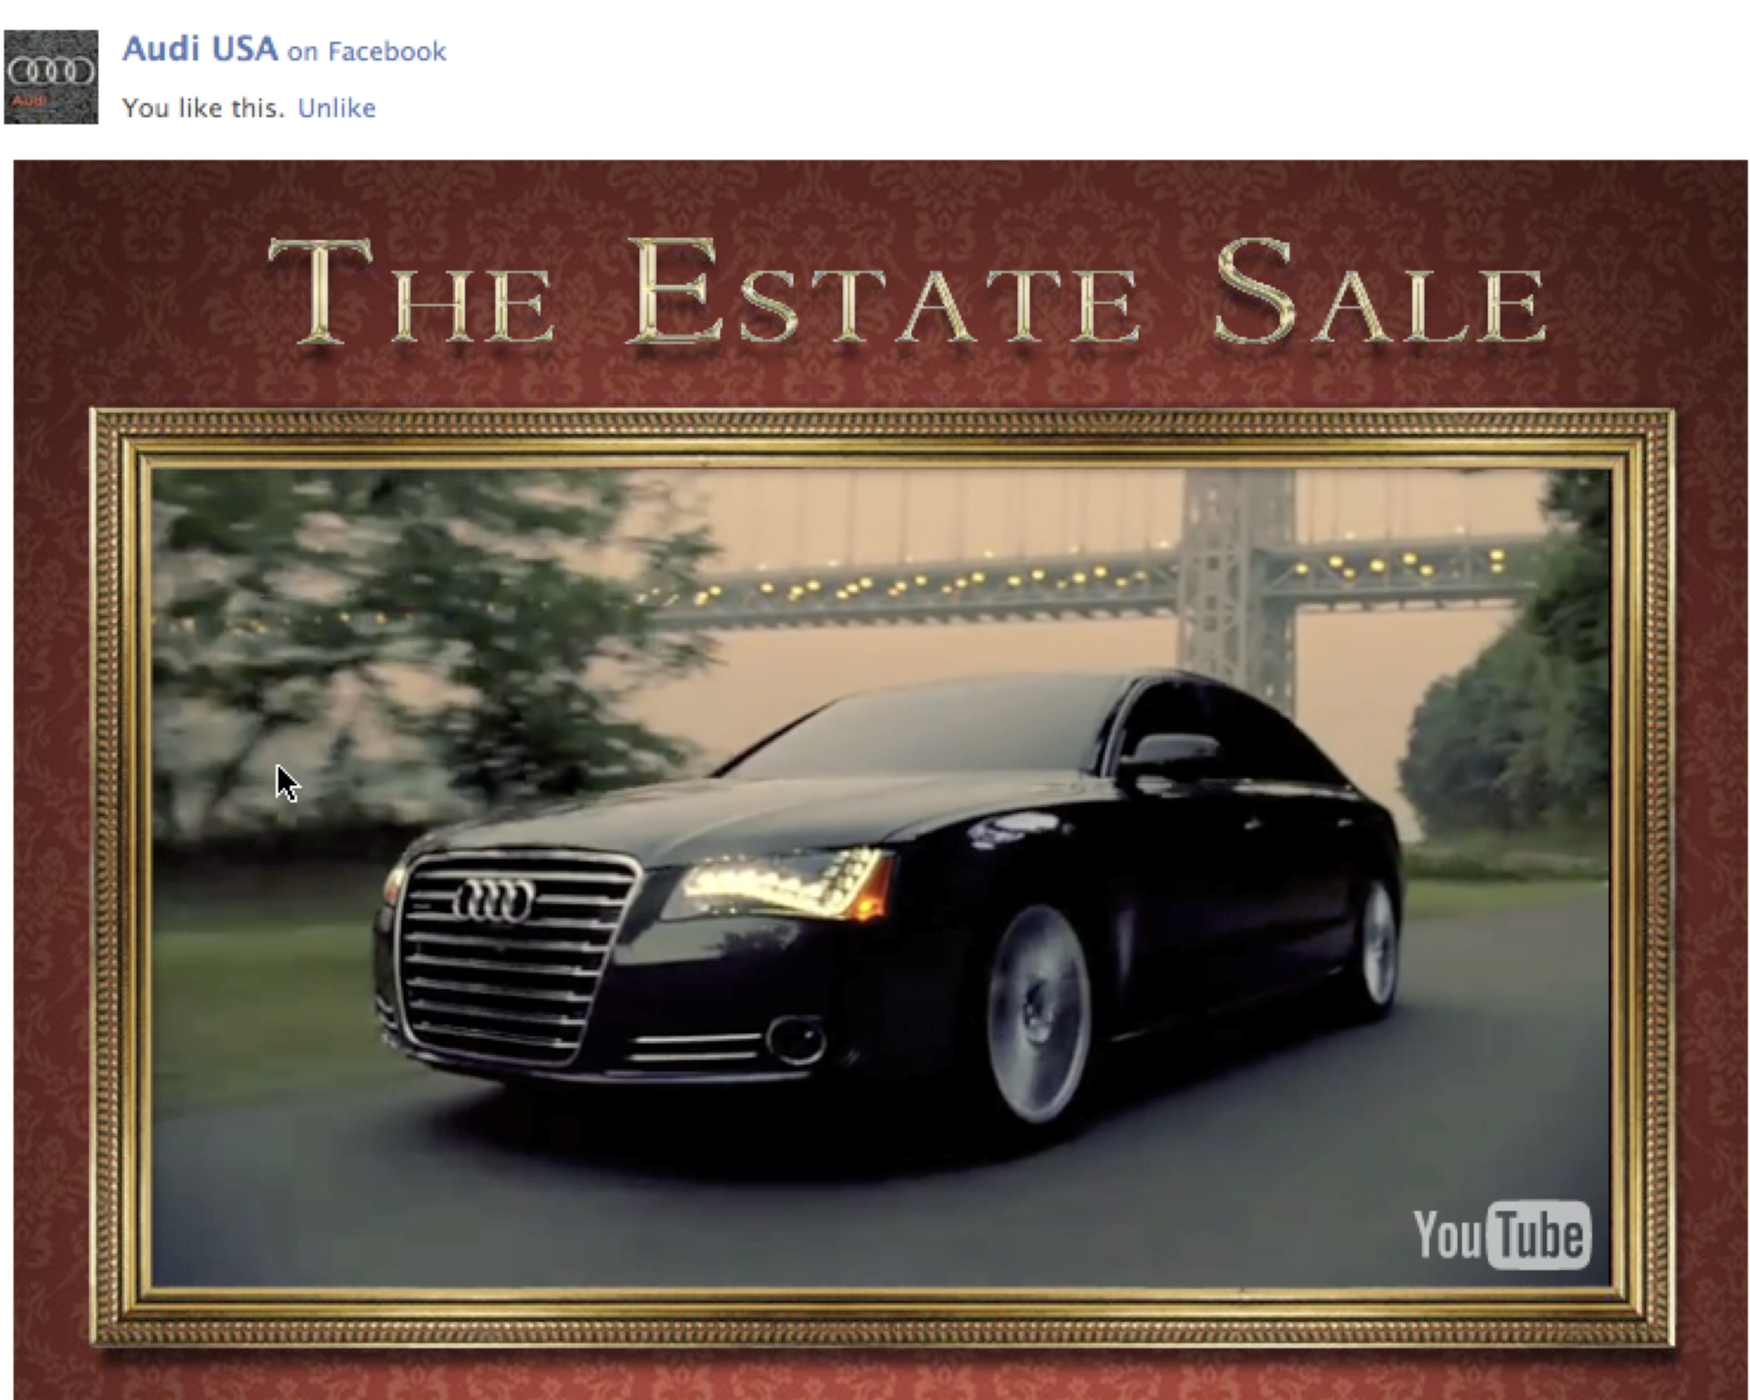 Audi Estate Sale - Facebook app turns YouTube video of Super Bowl spot into interactive game and contest. Game concept, UX, game strategy, art direction, production, creative tech lead.